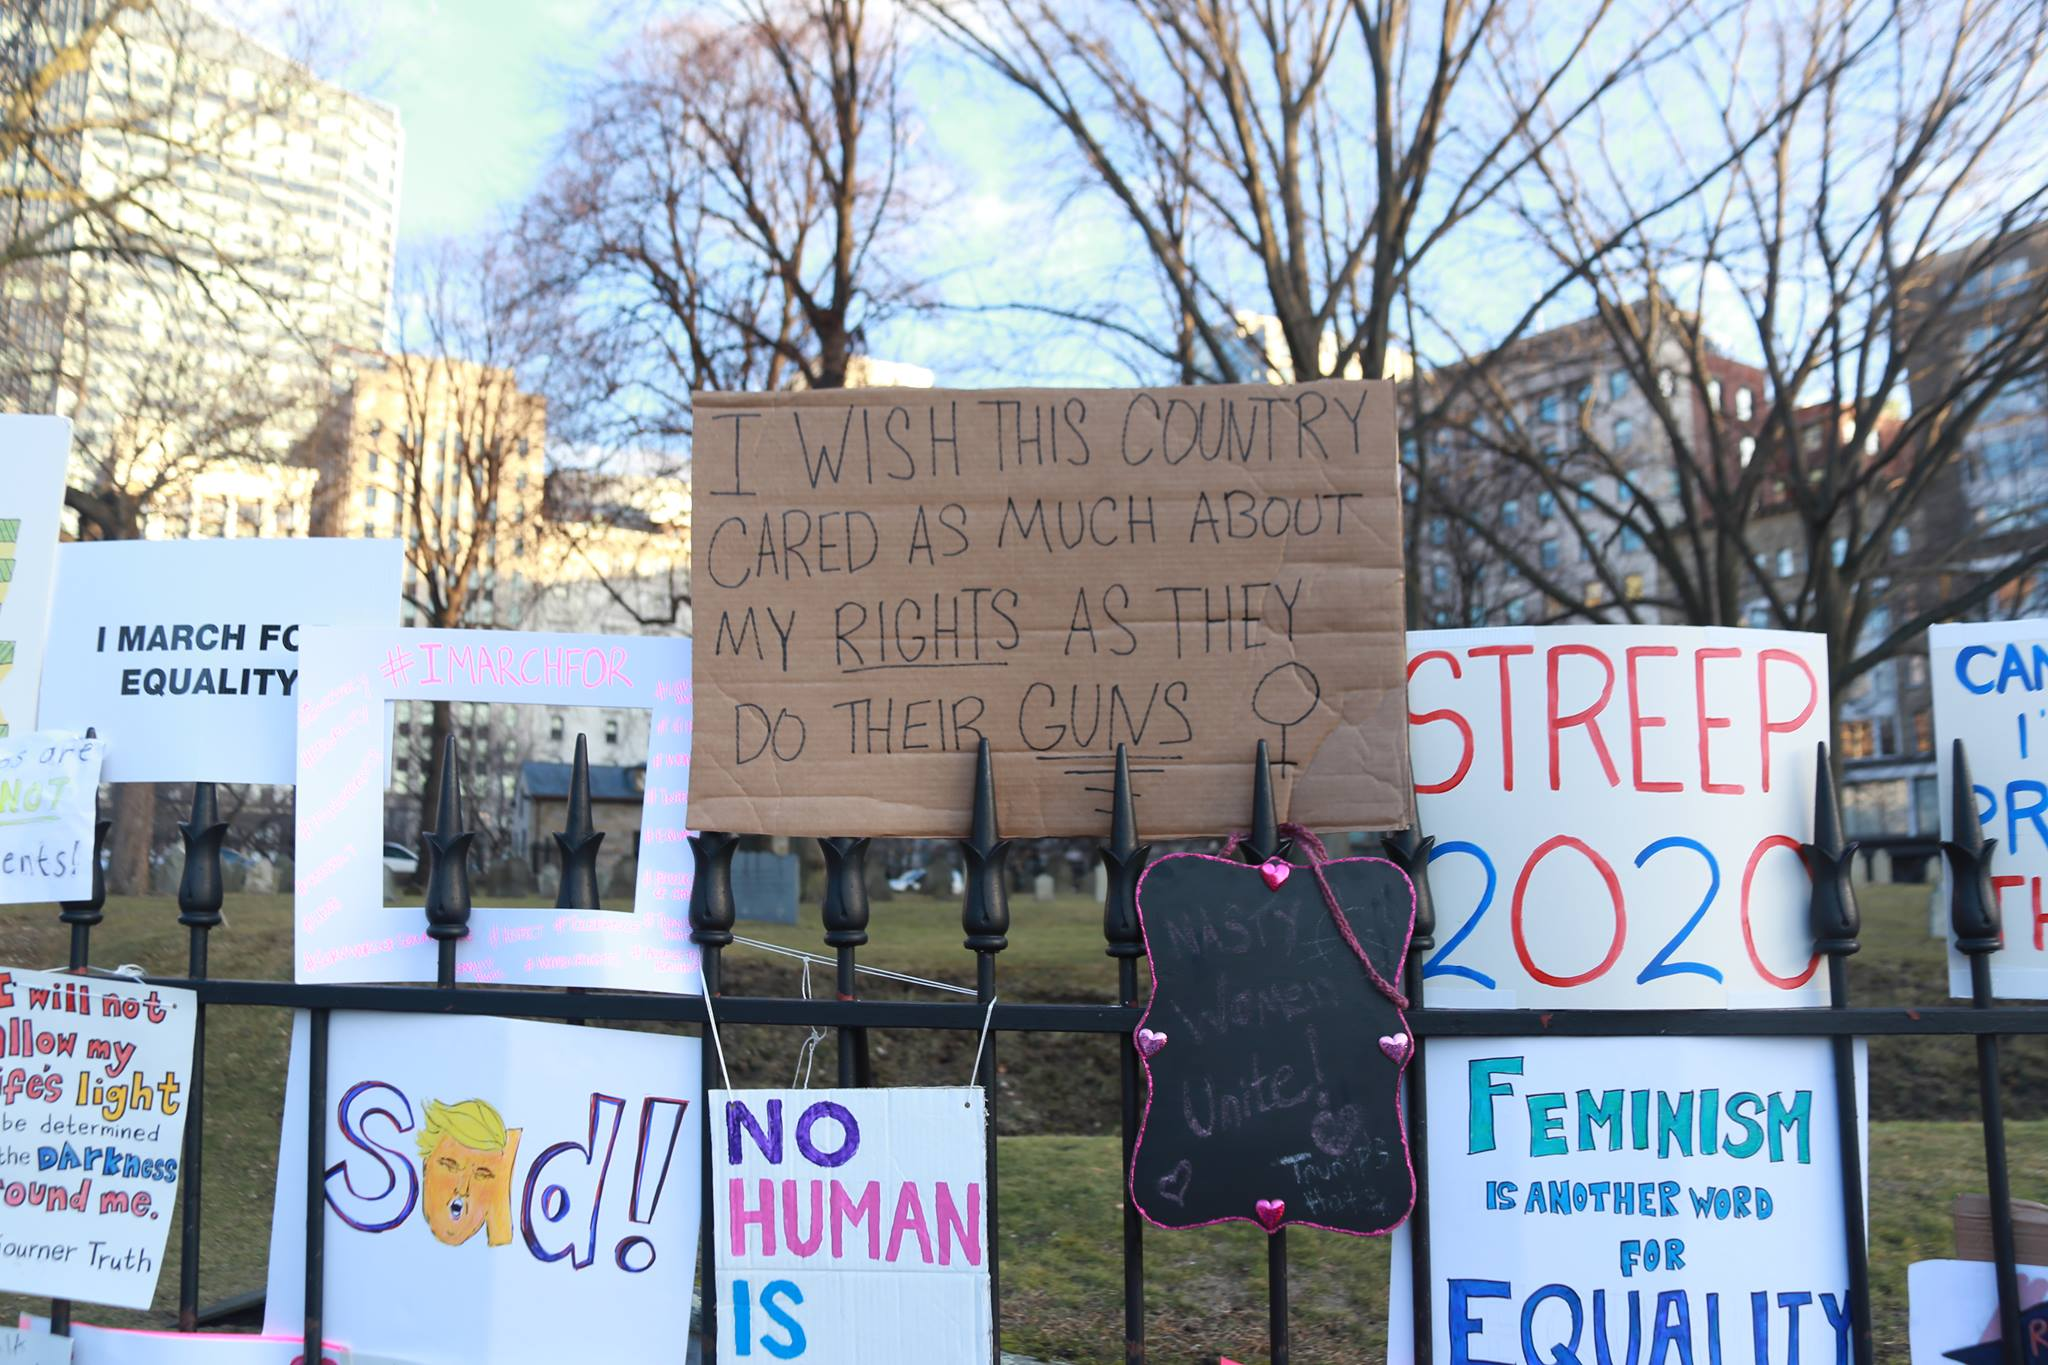 Photo by Vinny Mwano taken at a protest rally in Boston.